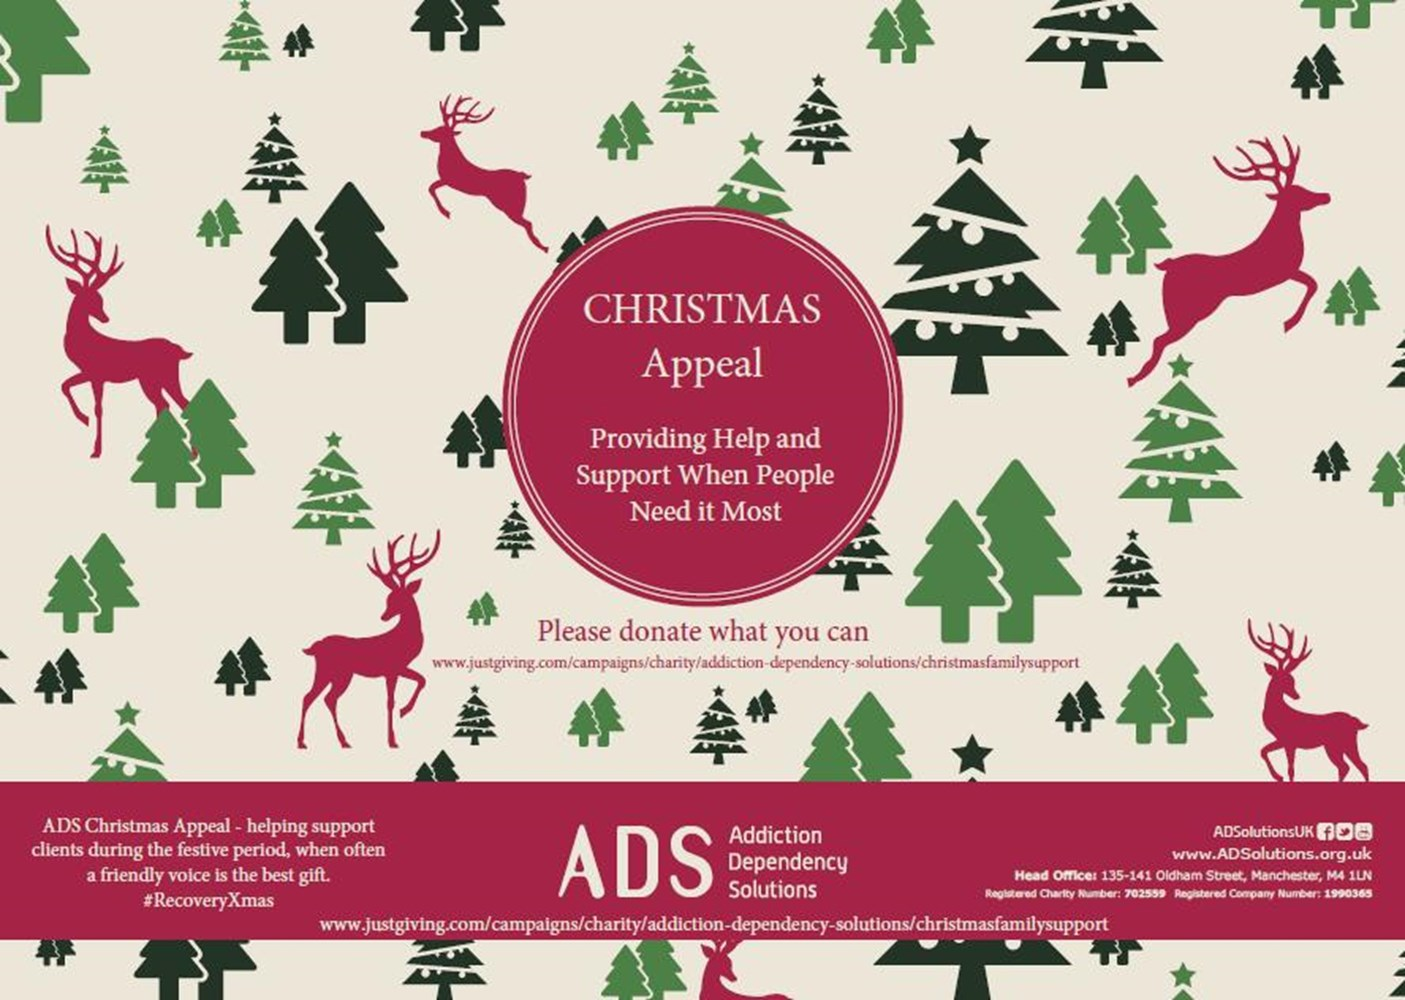 ADS Christmas Campaign: Supporting Families - JustGiving